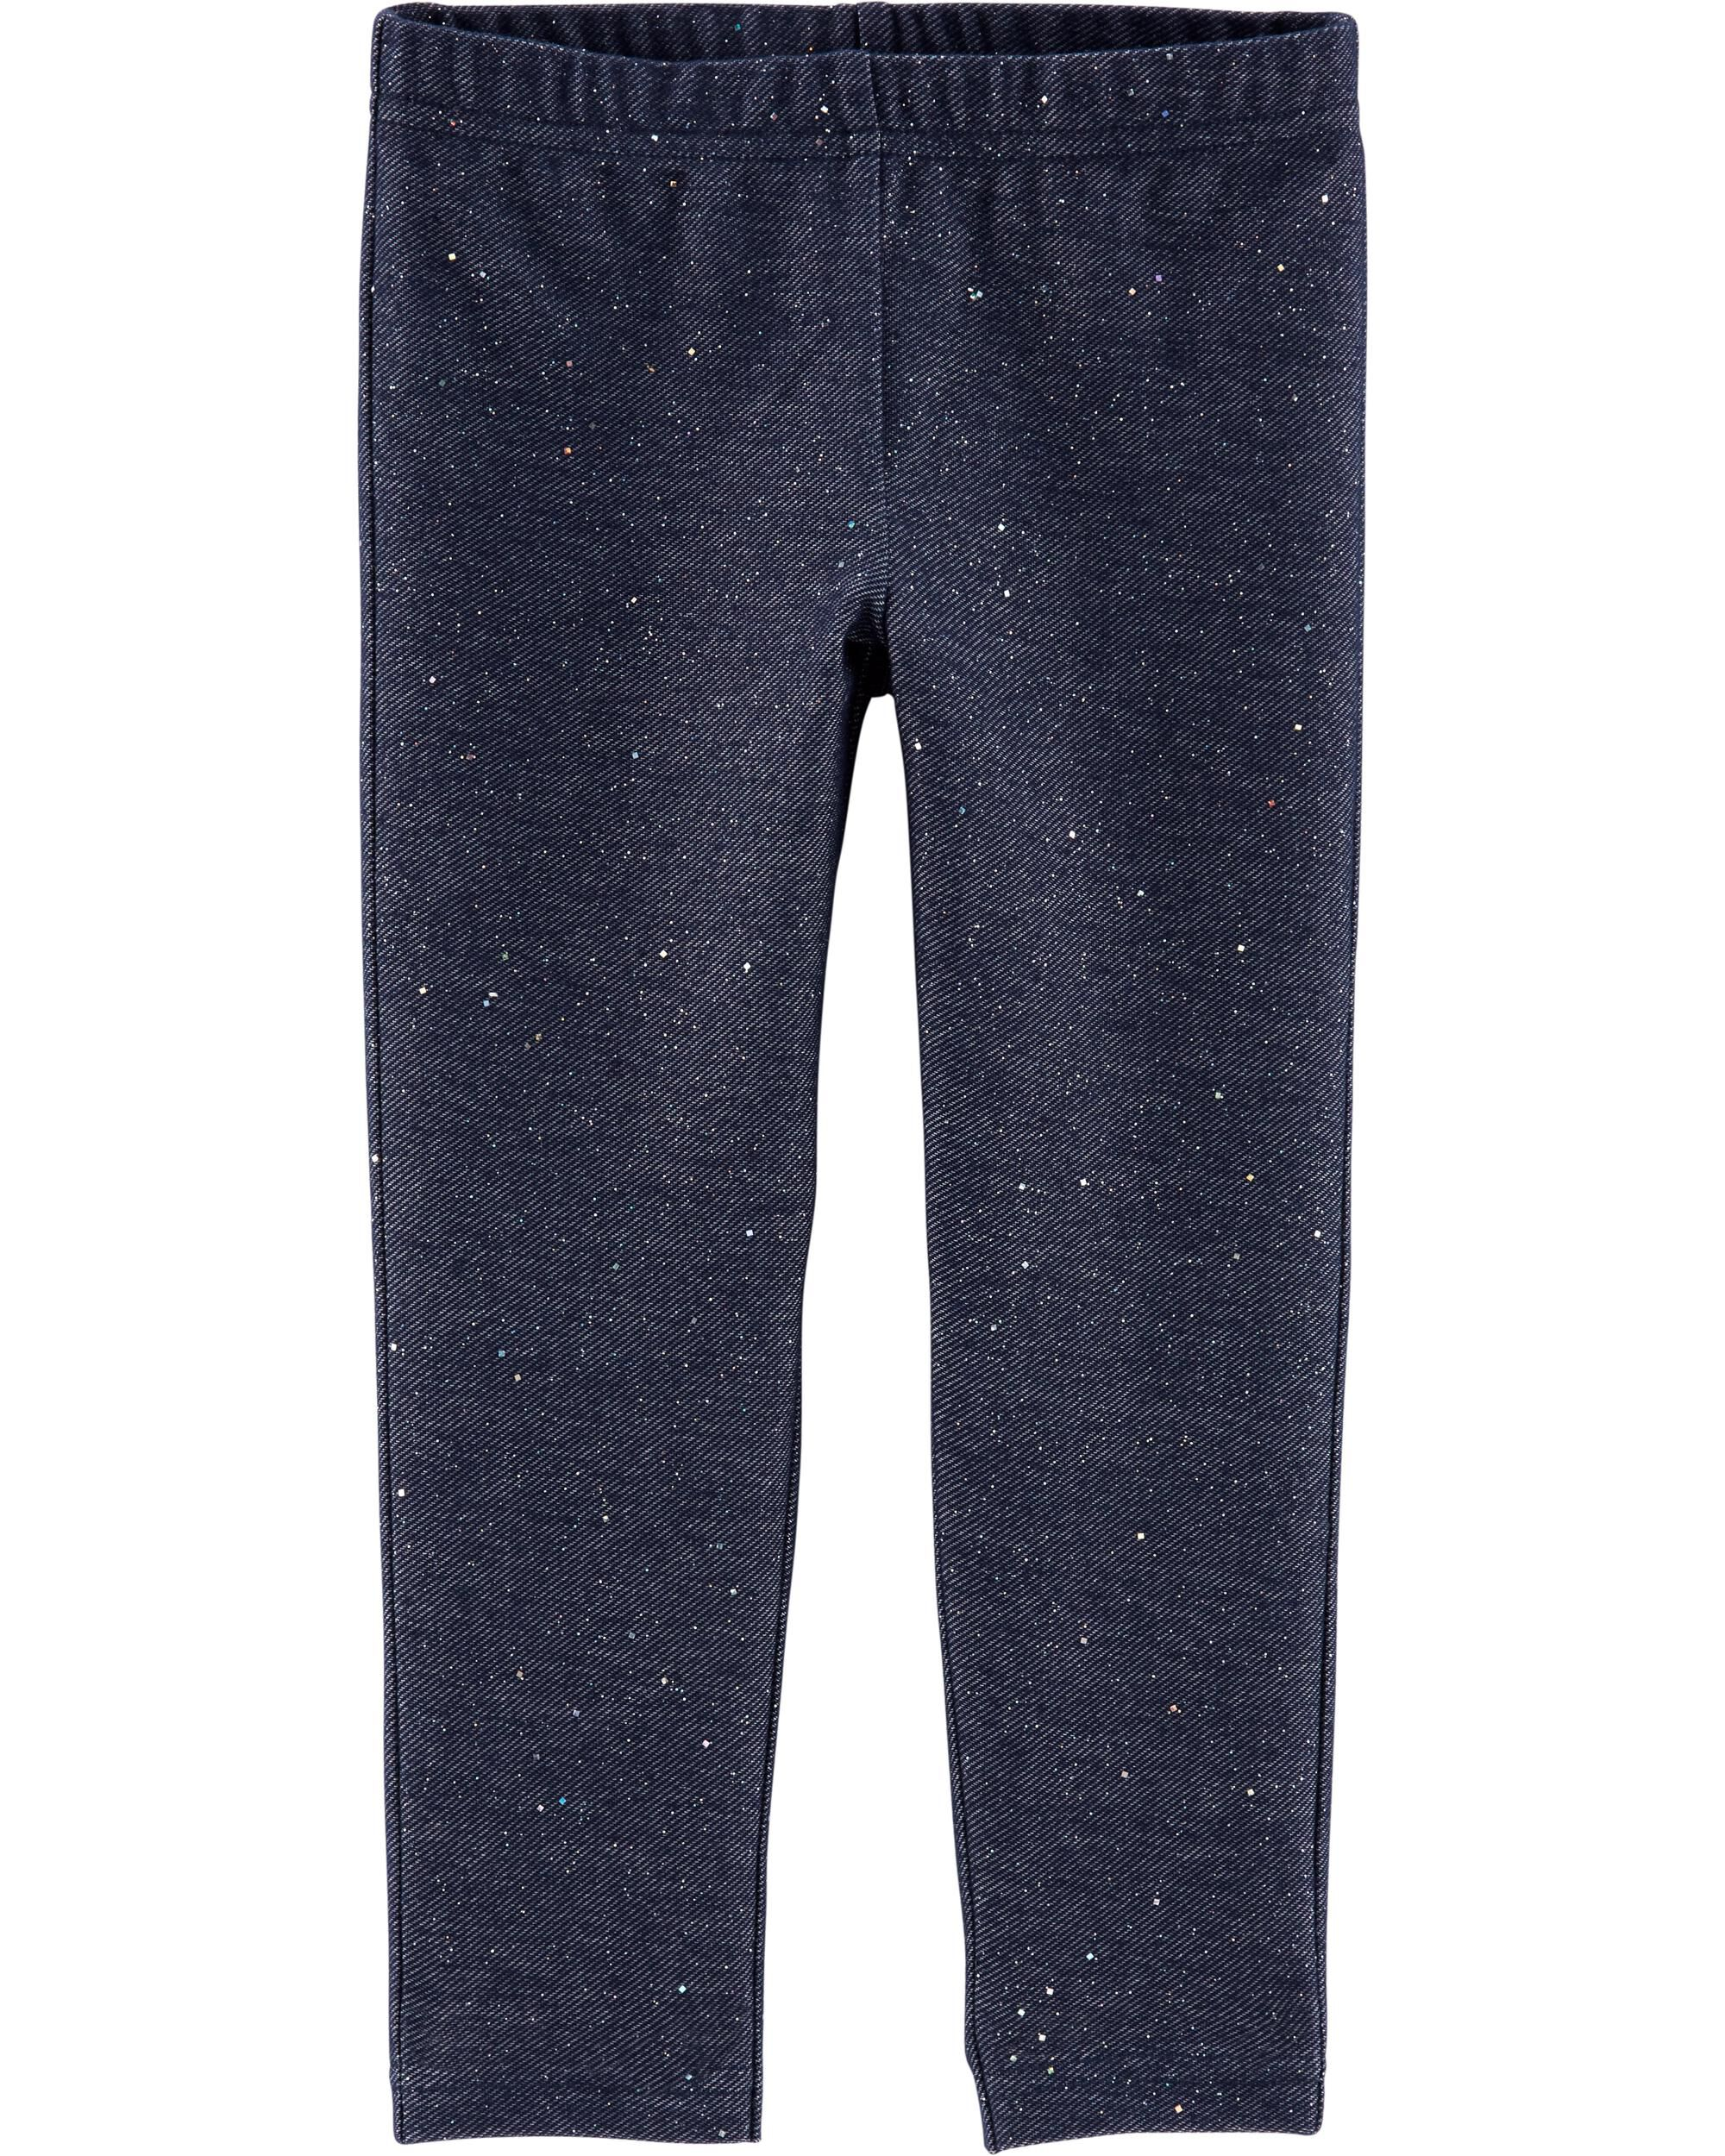 Carters Baby Boys Infants Pull On Faux Denim Pants New